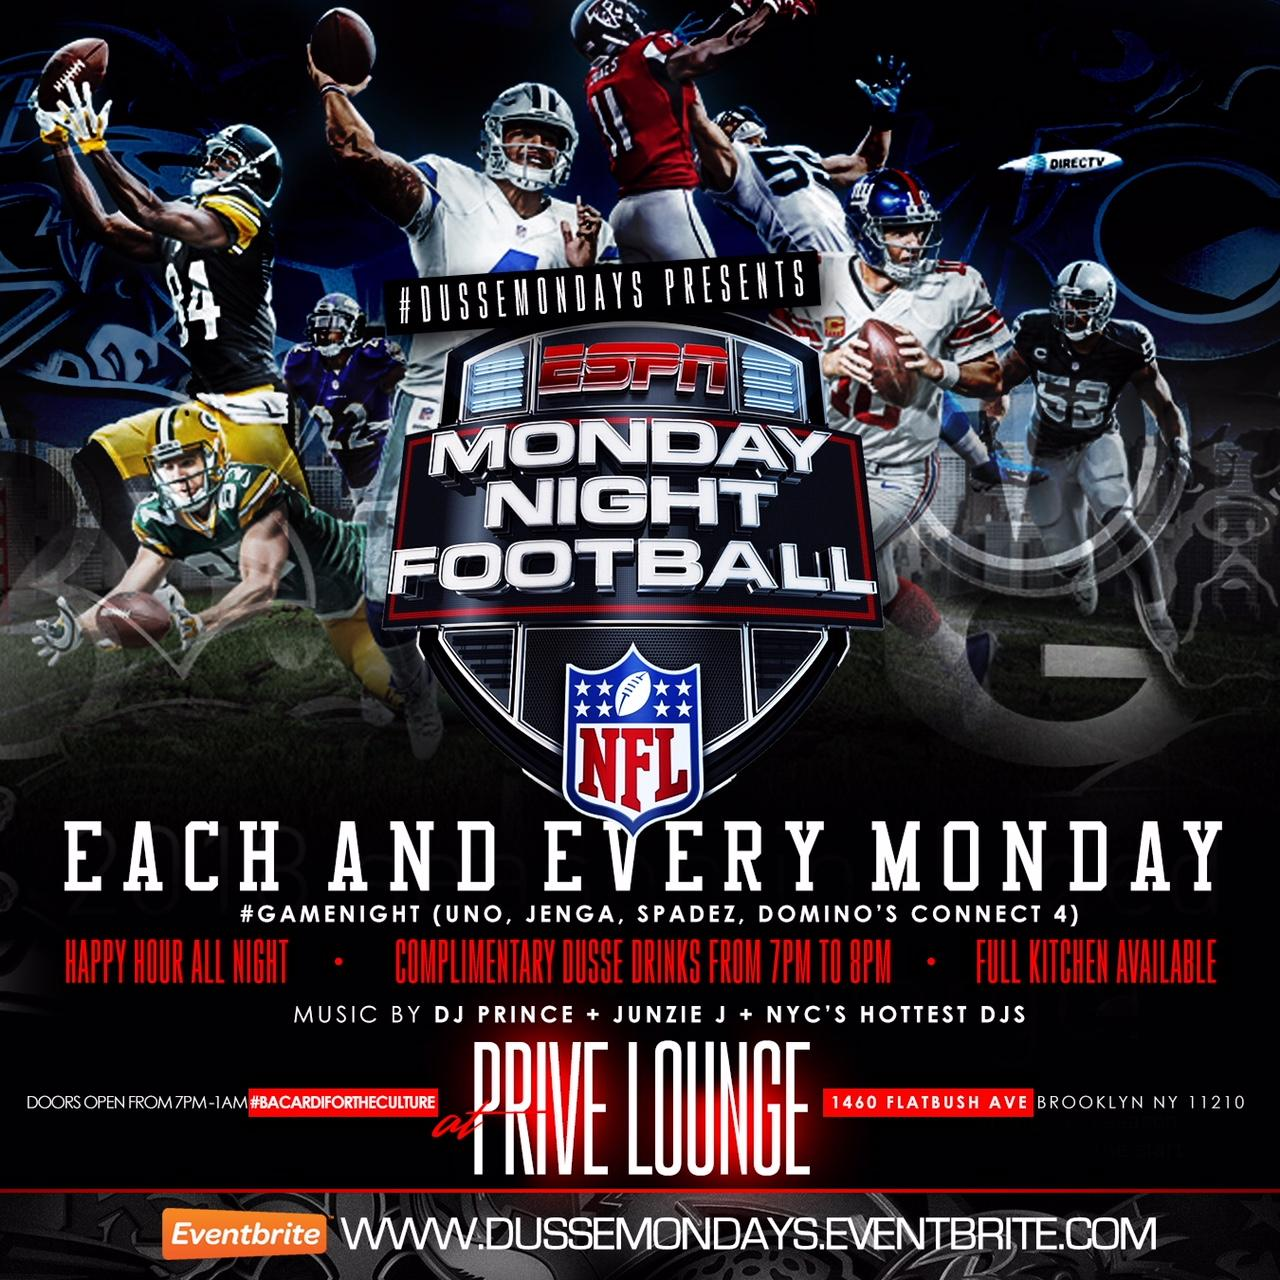 D'usse Monday's Presents Monday Night Football Game Night| Open Bar 7pm-8pm